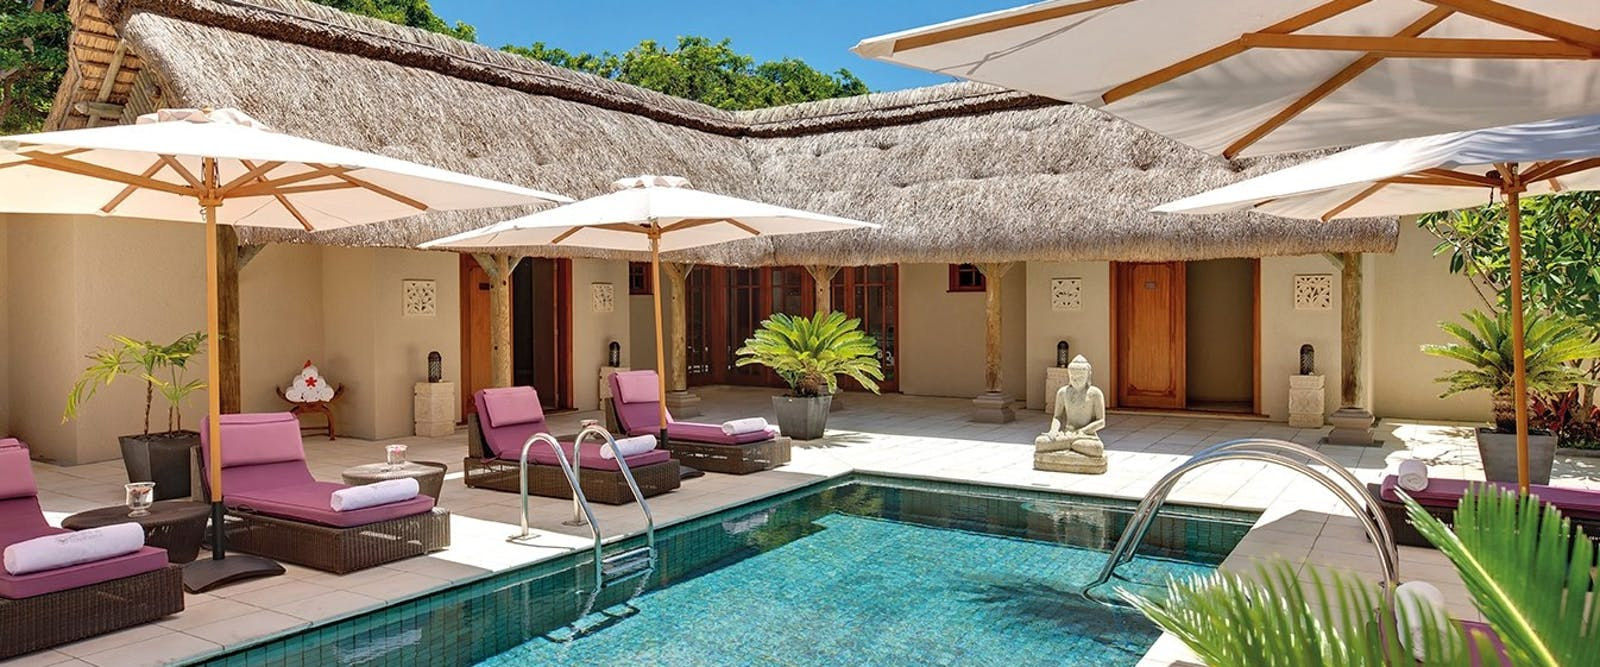 Spa at Constance Prince Maurice, Mauritius